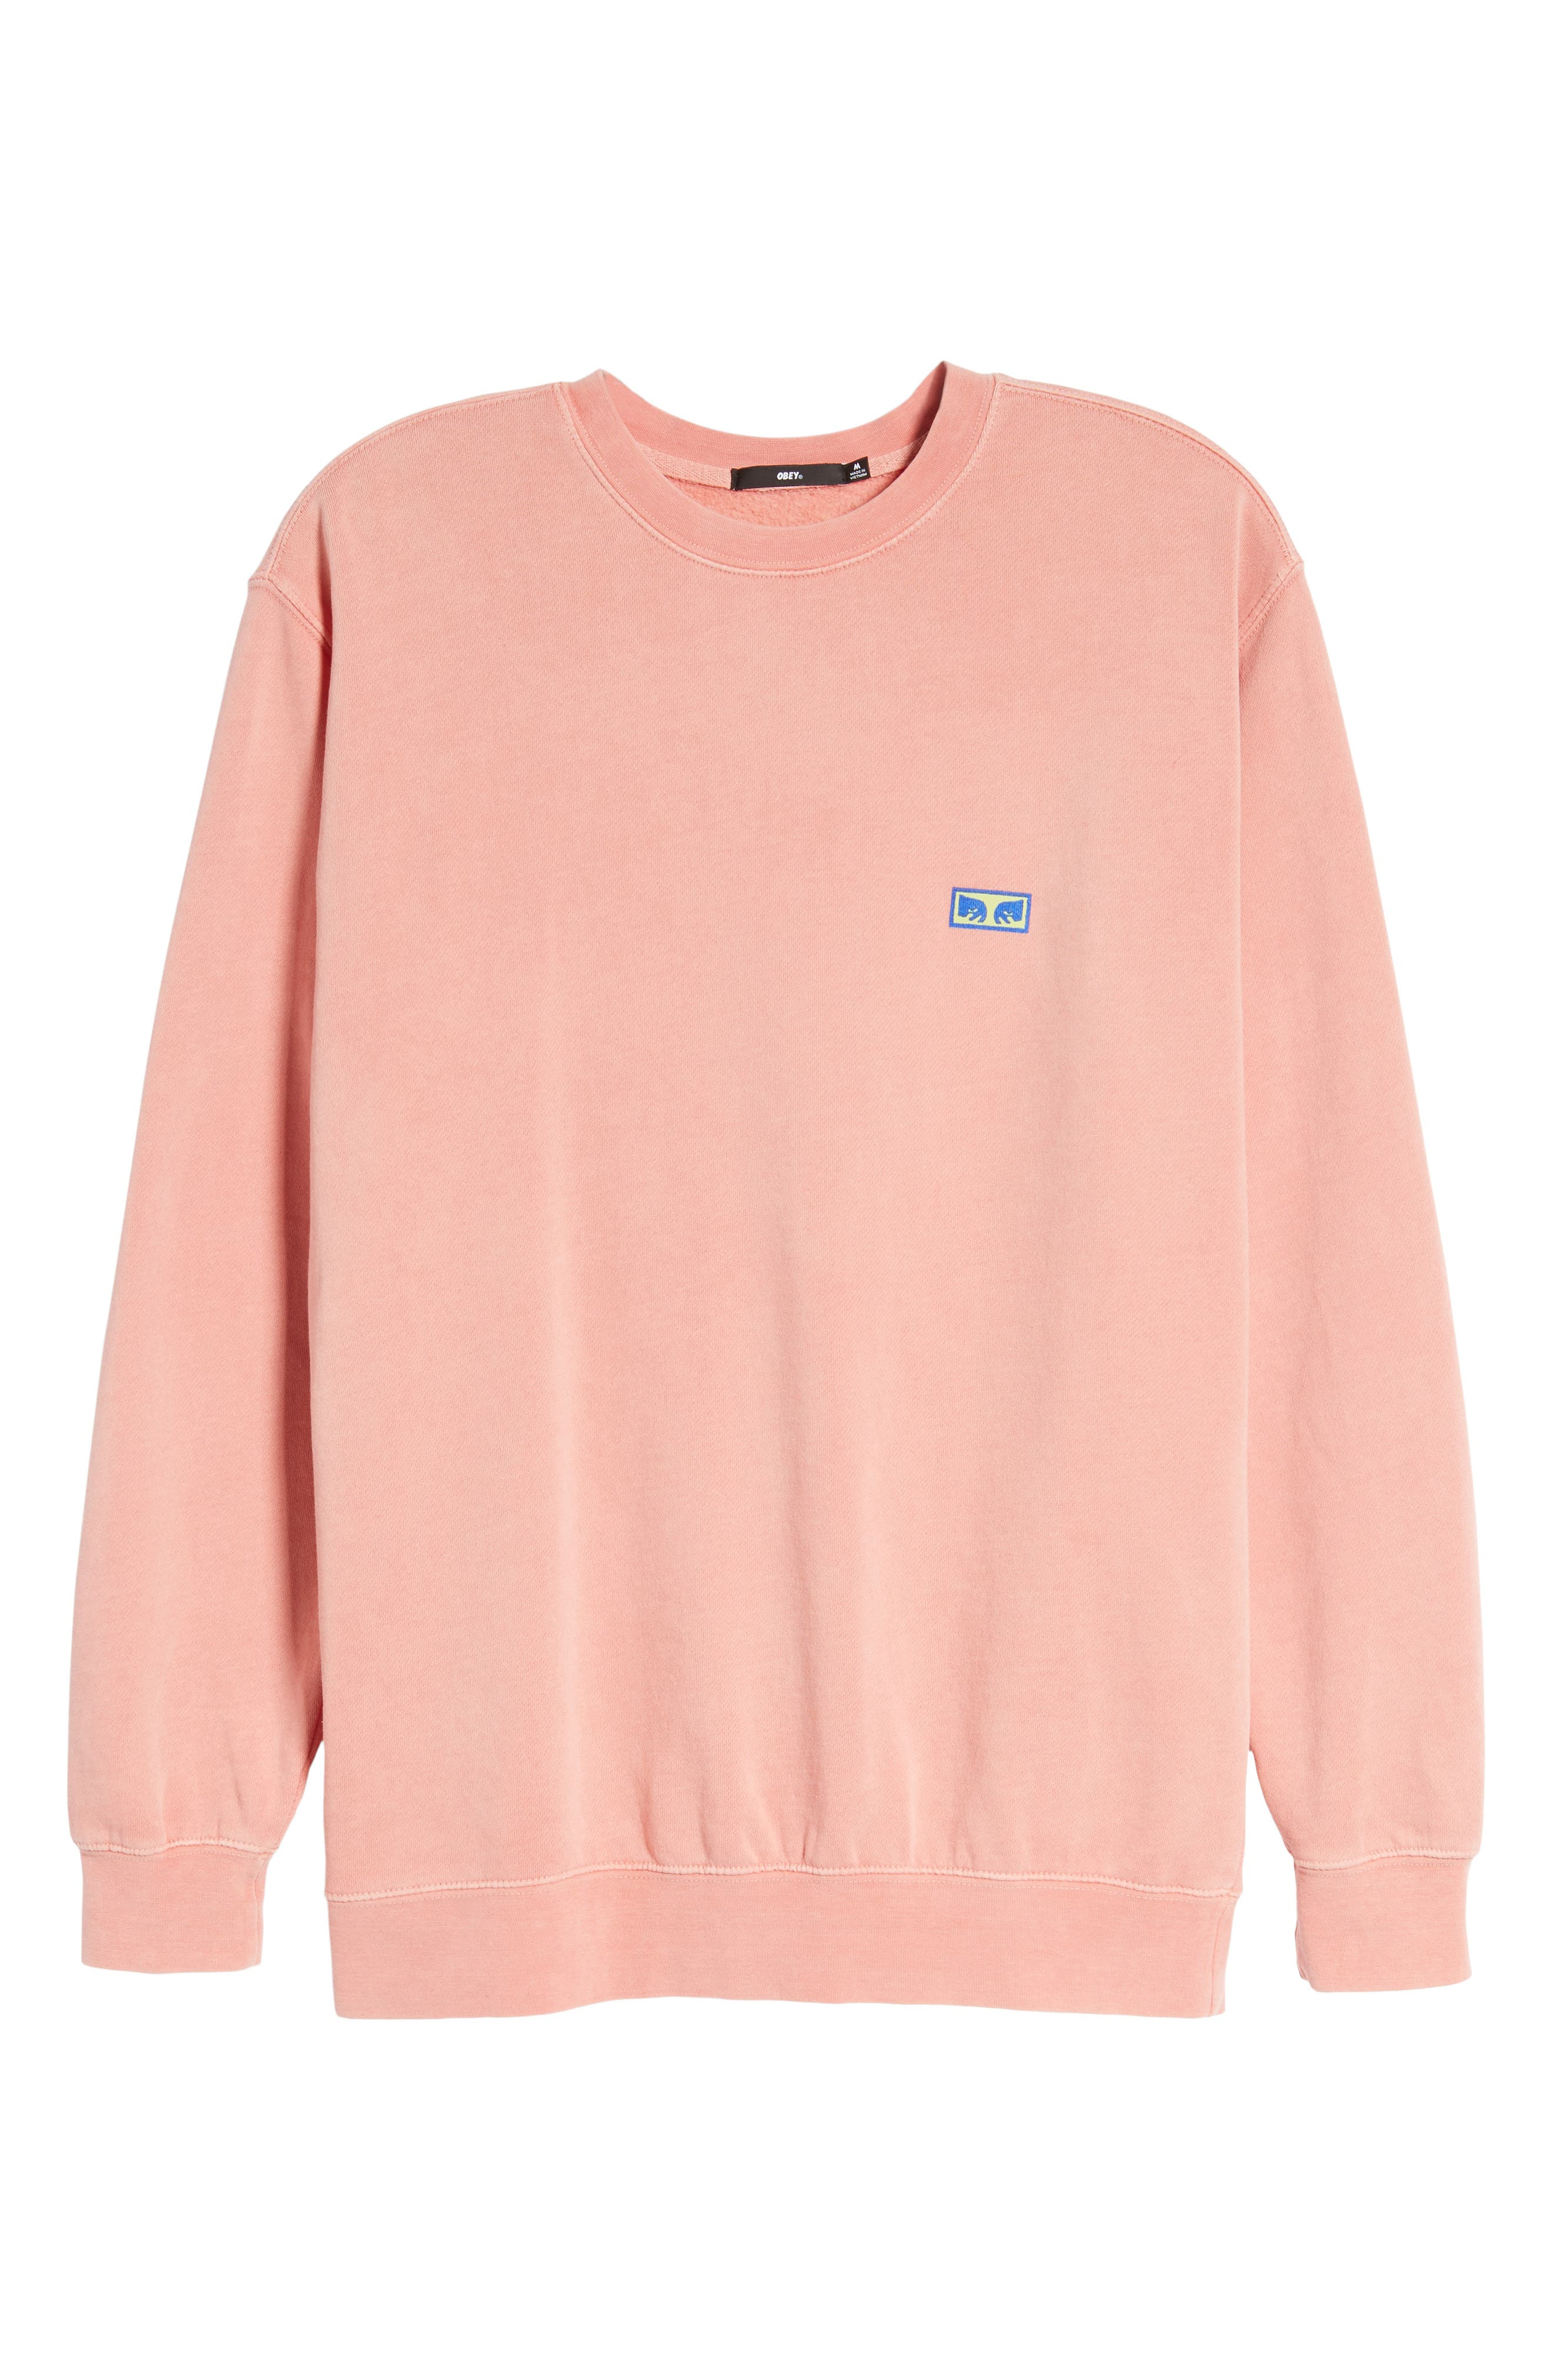 Flashback Pigment Dyed Sweatshirt,                             Alternate thumbnail 6, color,